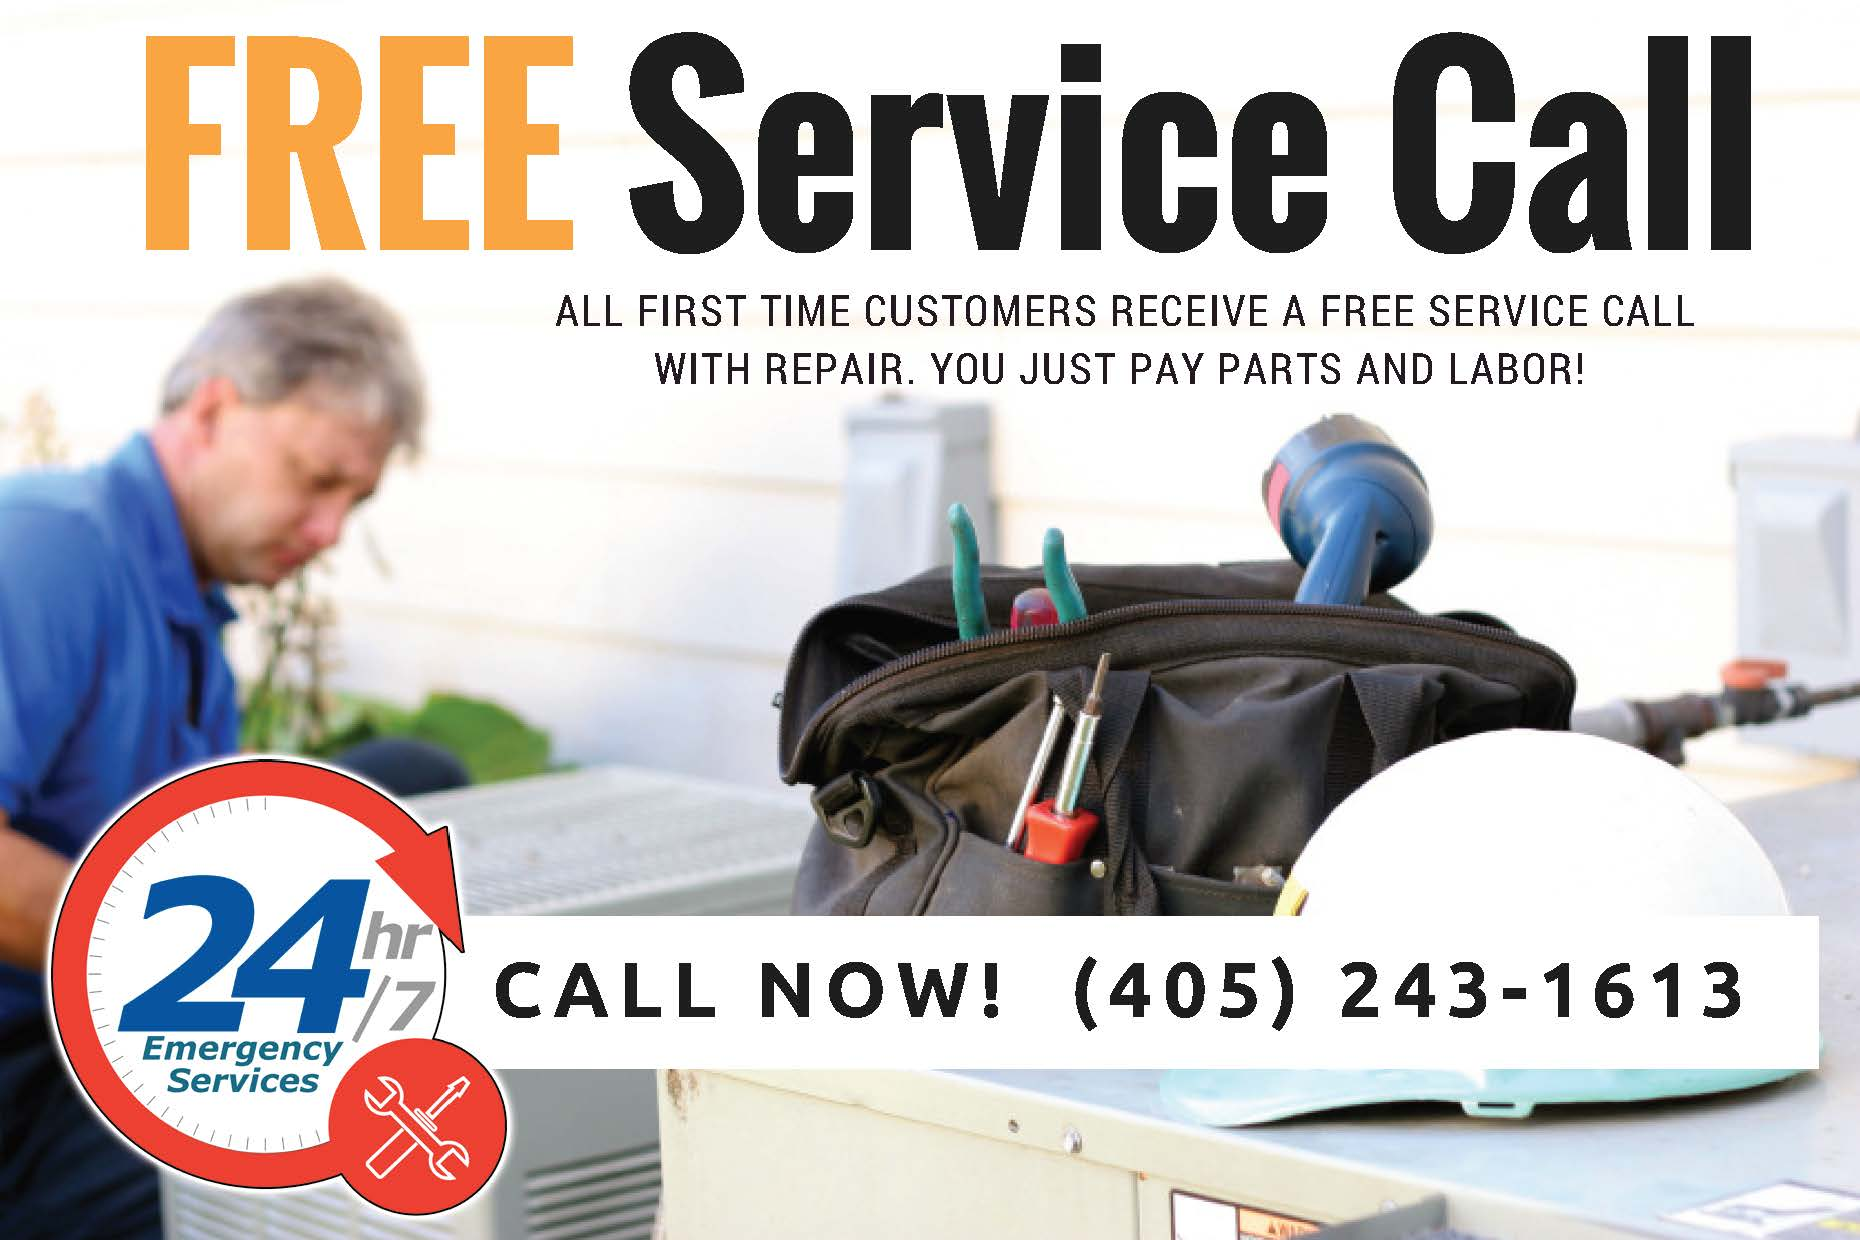 Free Heater or Furnace Service Call for Piedmont Residents